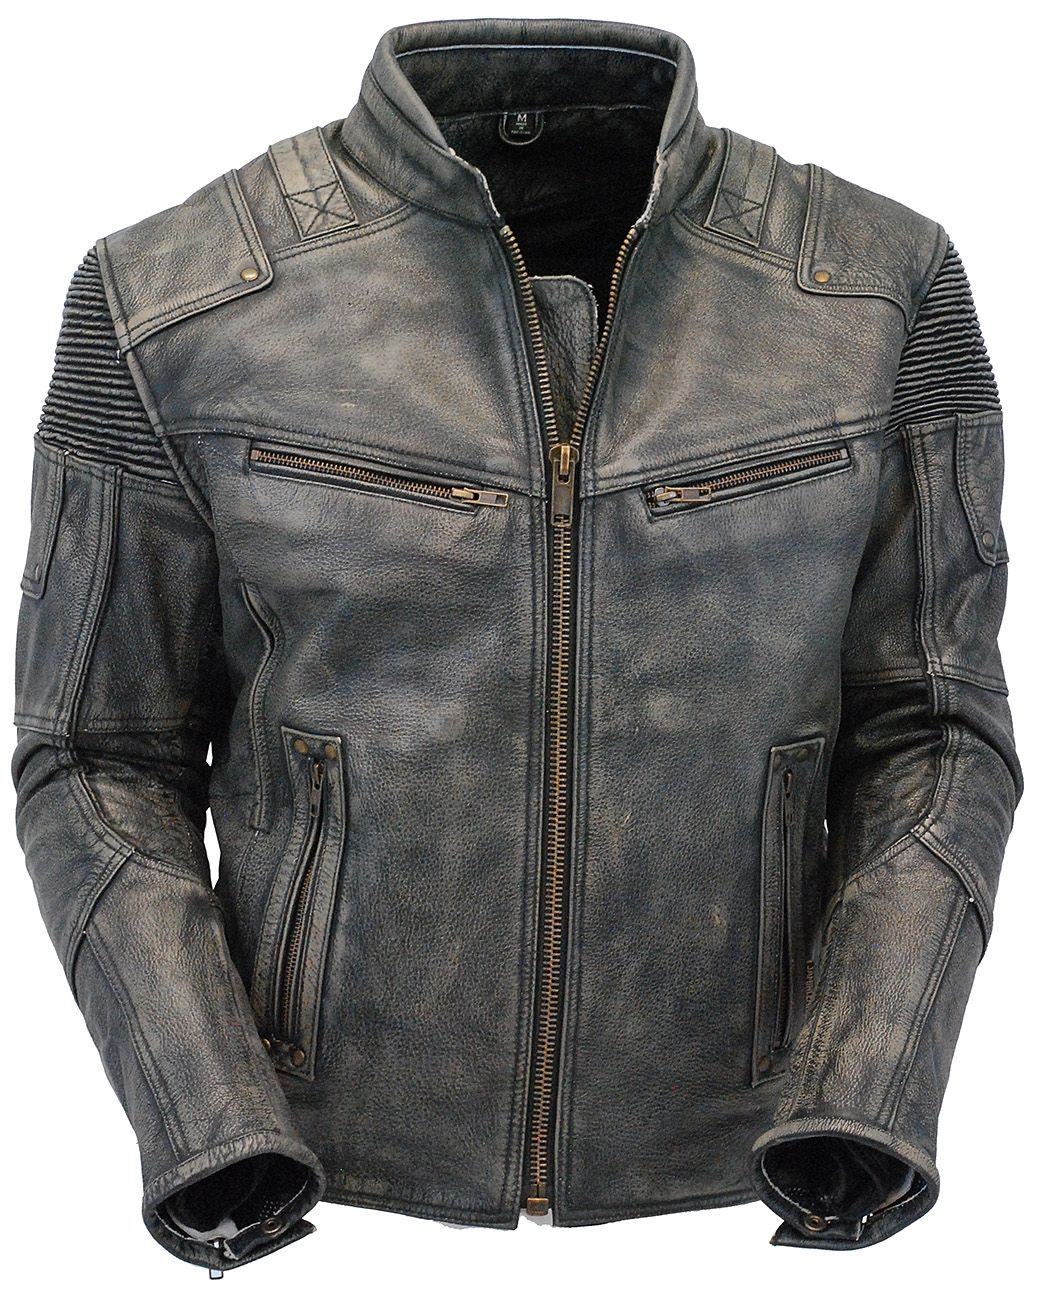 Men S Ultimate Vintage Gray Vented Racer Jacket W Ccw Pockets Ma6633vzgy Leather Jacket Outfit Men Leather Jacket Gray Leather Jacket Outfit [ 1304 x 1048 Pixel ]